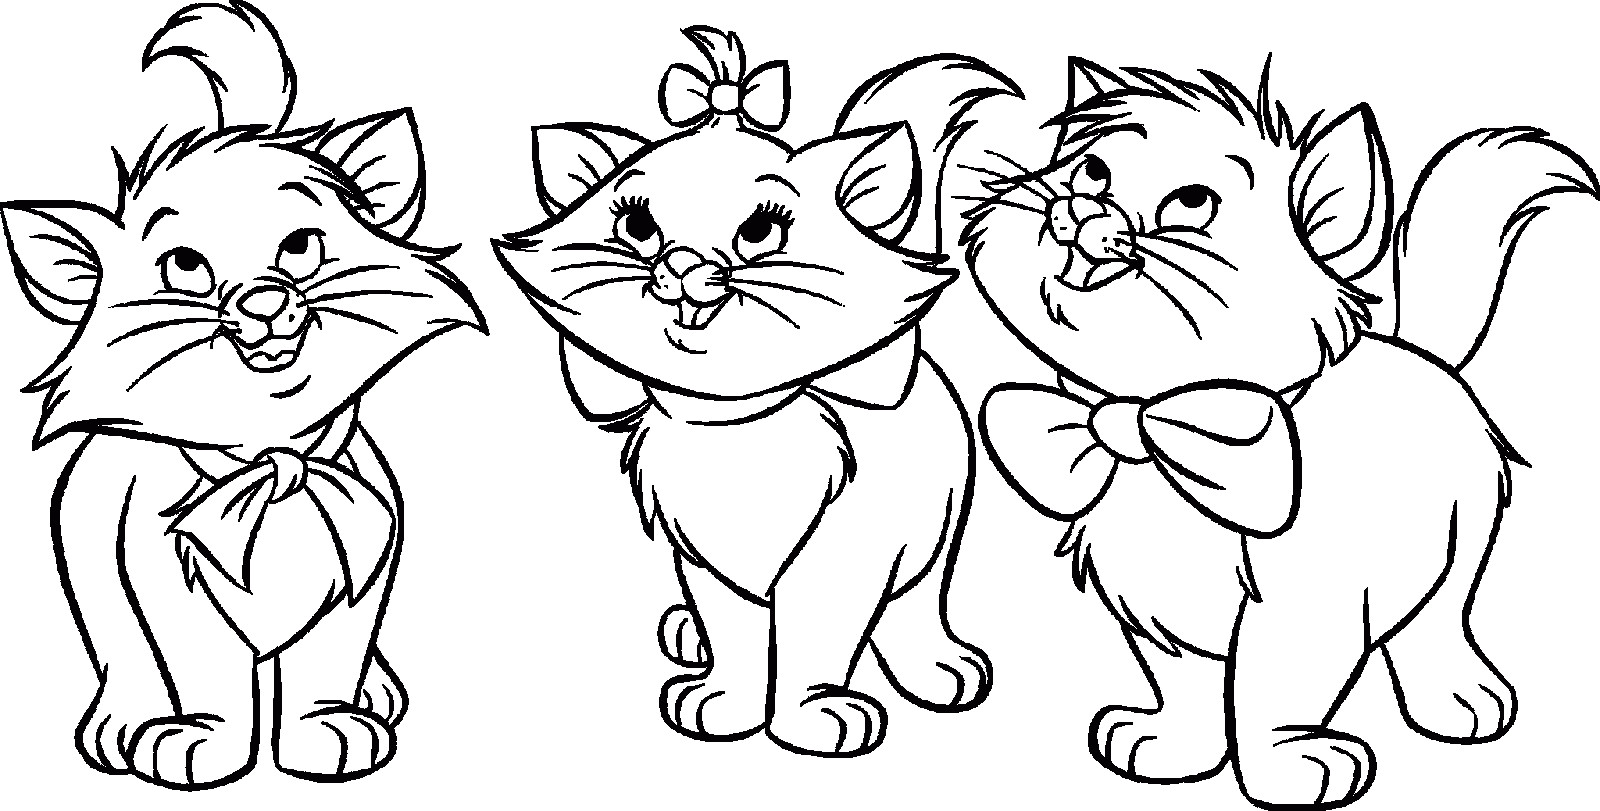 Kitty Cat Coloring Pages Printable At Getdrawings Com Free For